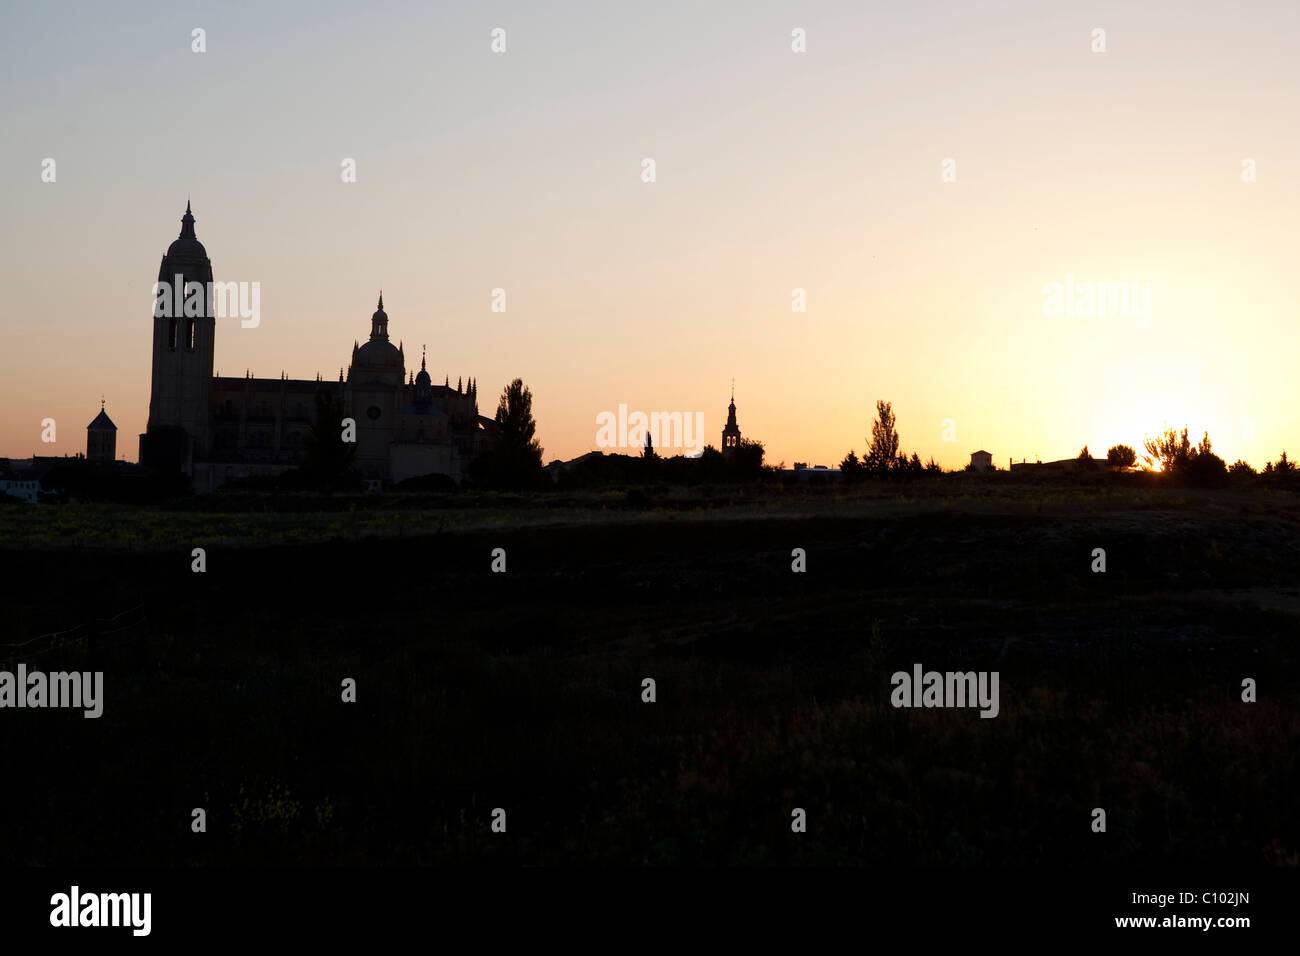 Back light view of Segovia Cathedral (Spain) at dawn - Stock Image